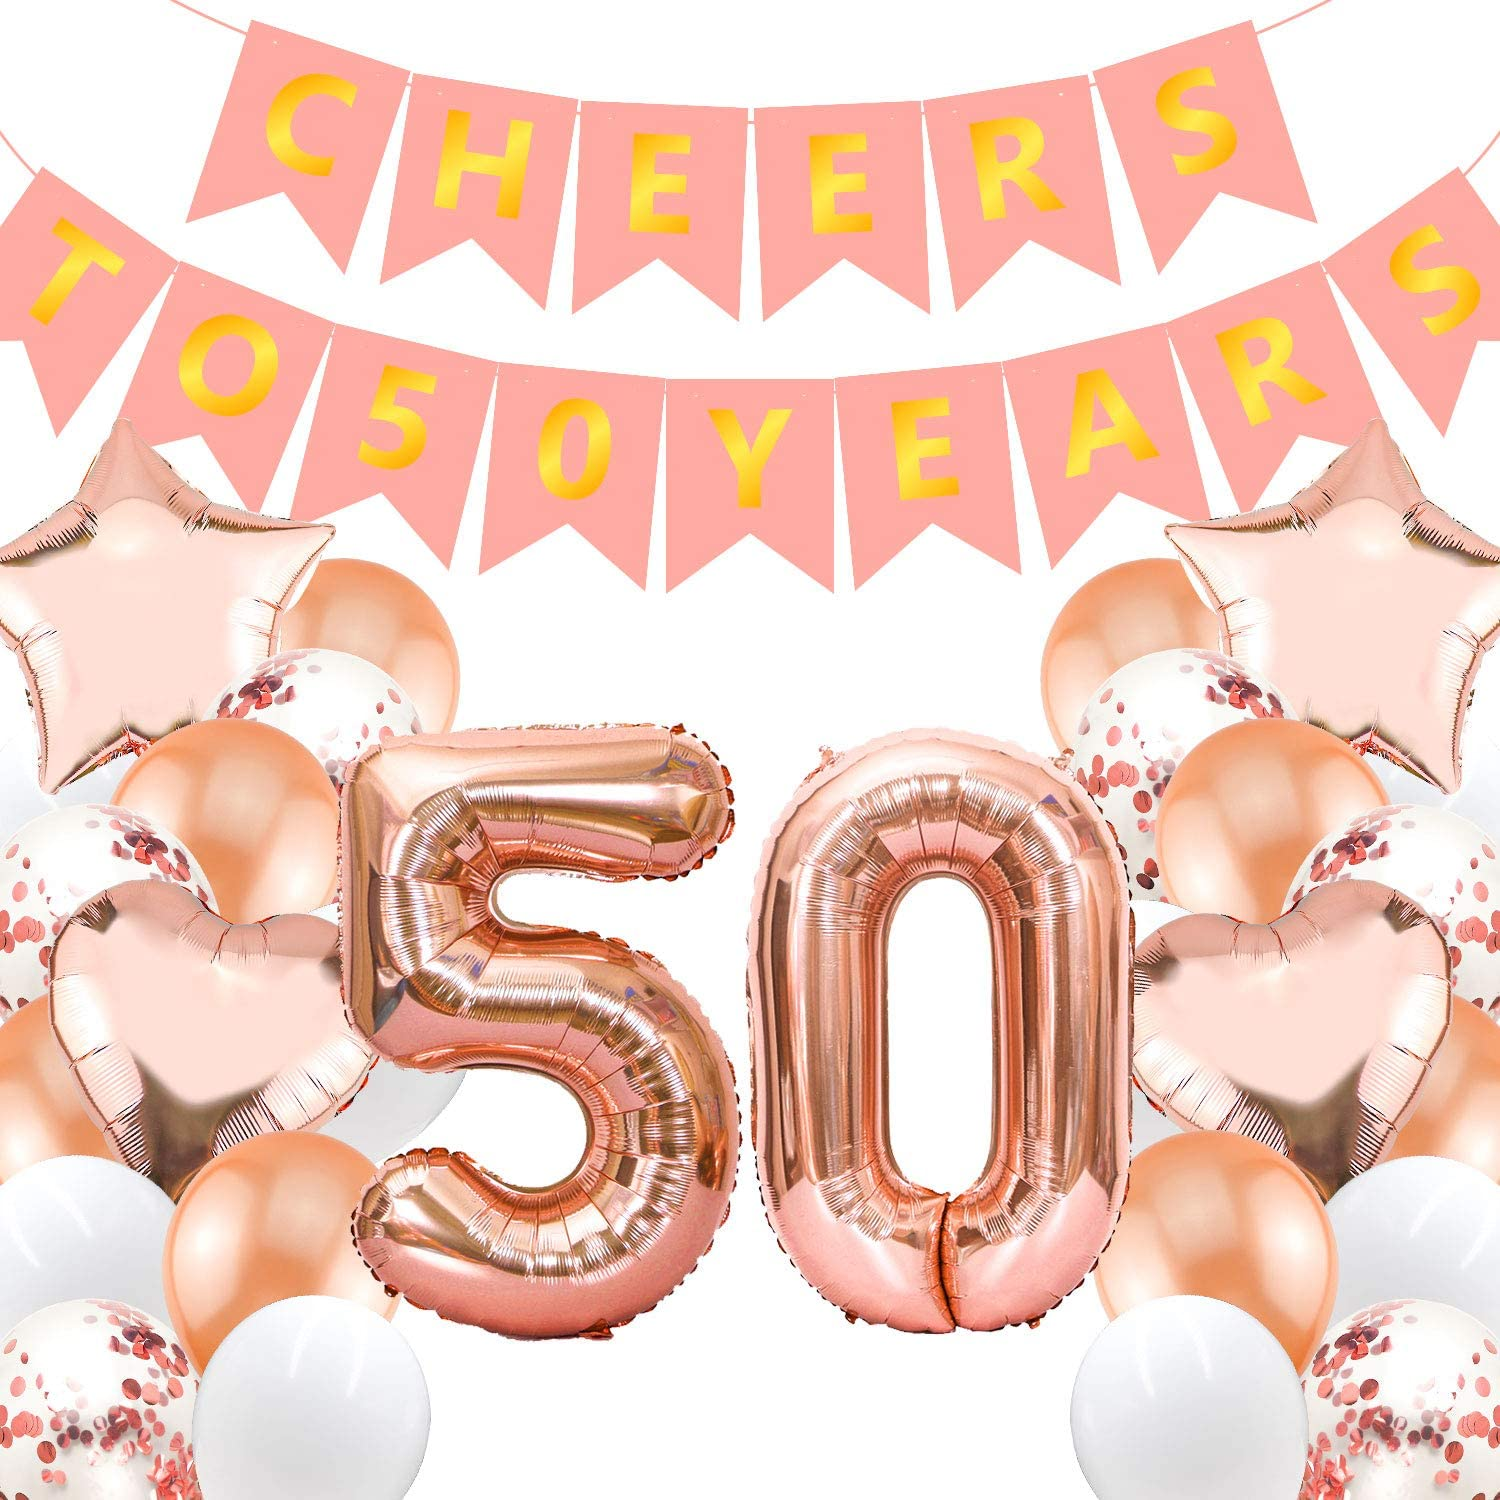 Cheers to 50 Rose Gold Balloons,Cheers to 50 Letter Balloons,Cheers Rose Gold Letter Balloons,Cheers Balloons,Cheers Banner,50th Birthday